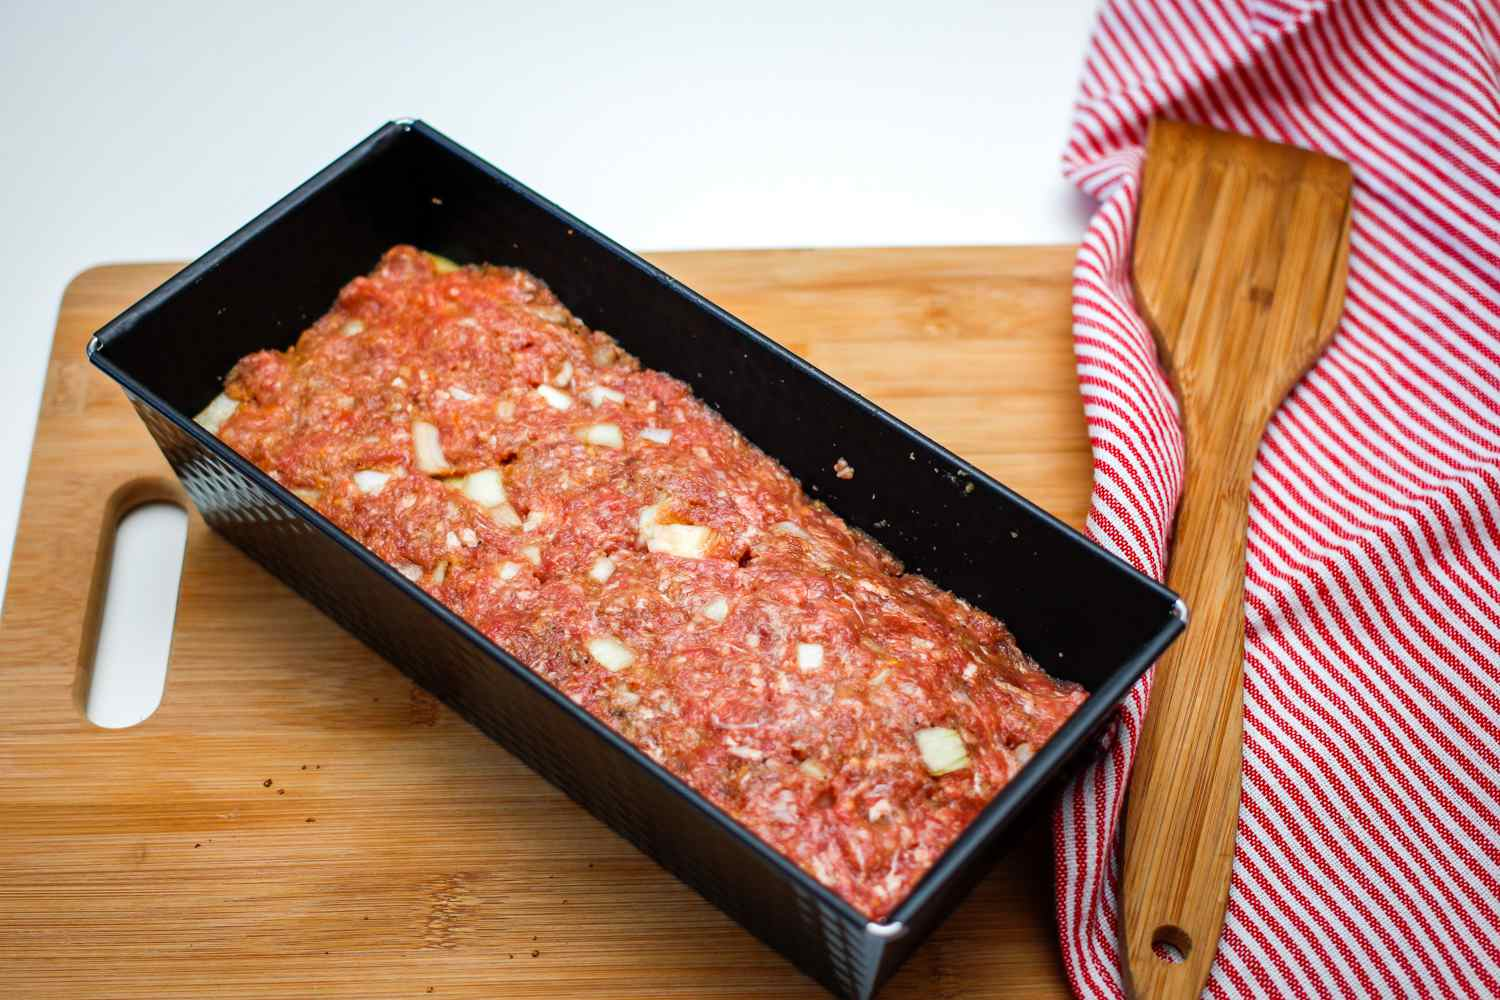 Meatloaf in a baking pan